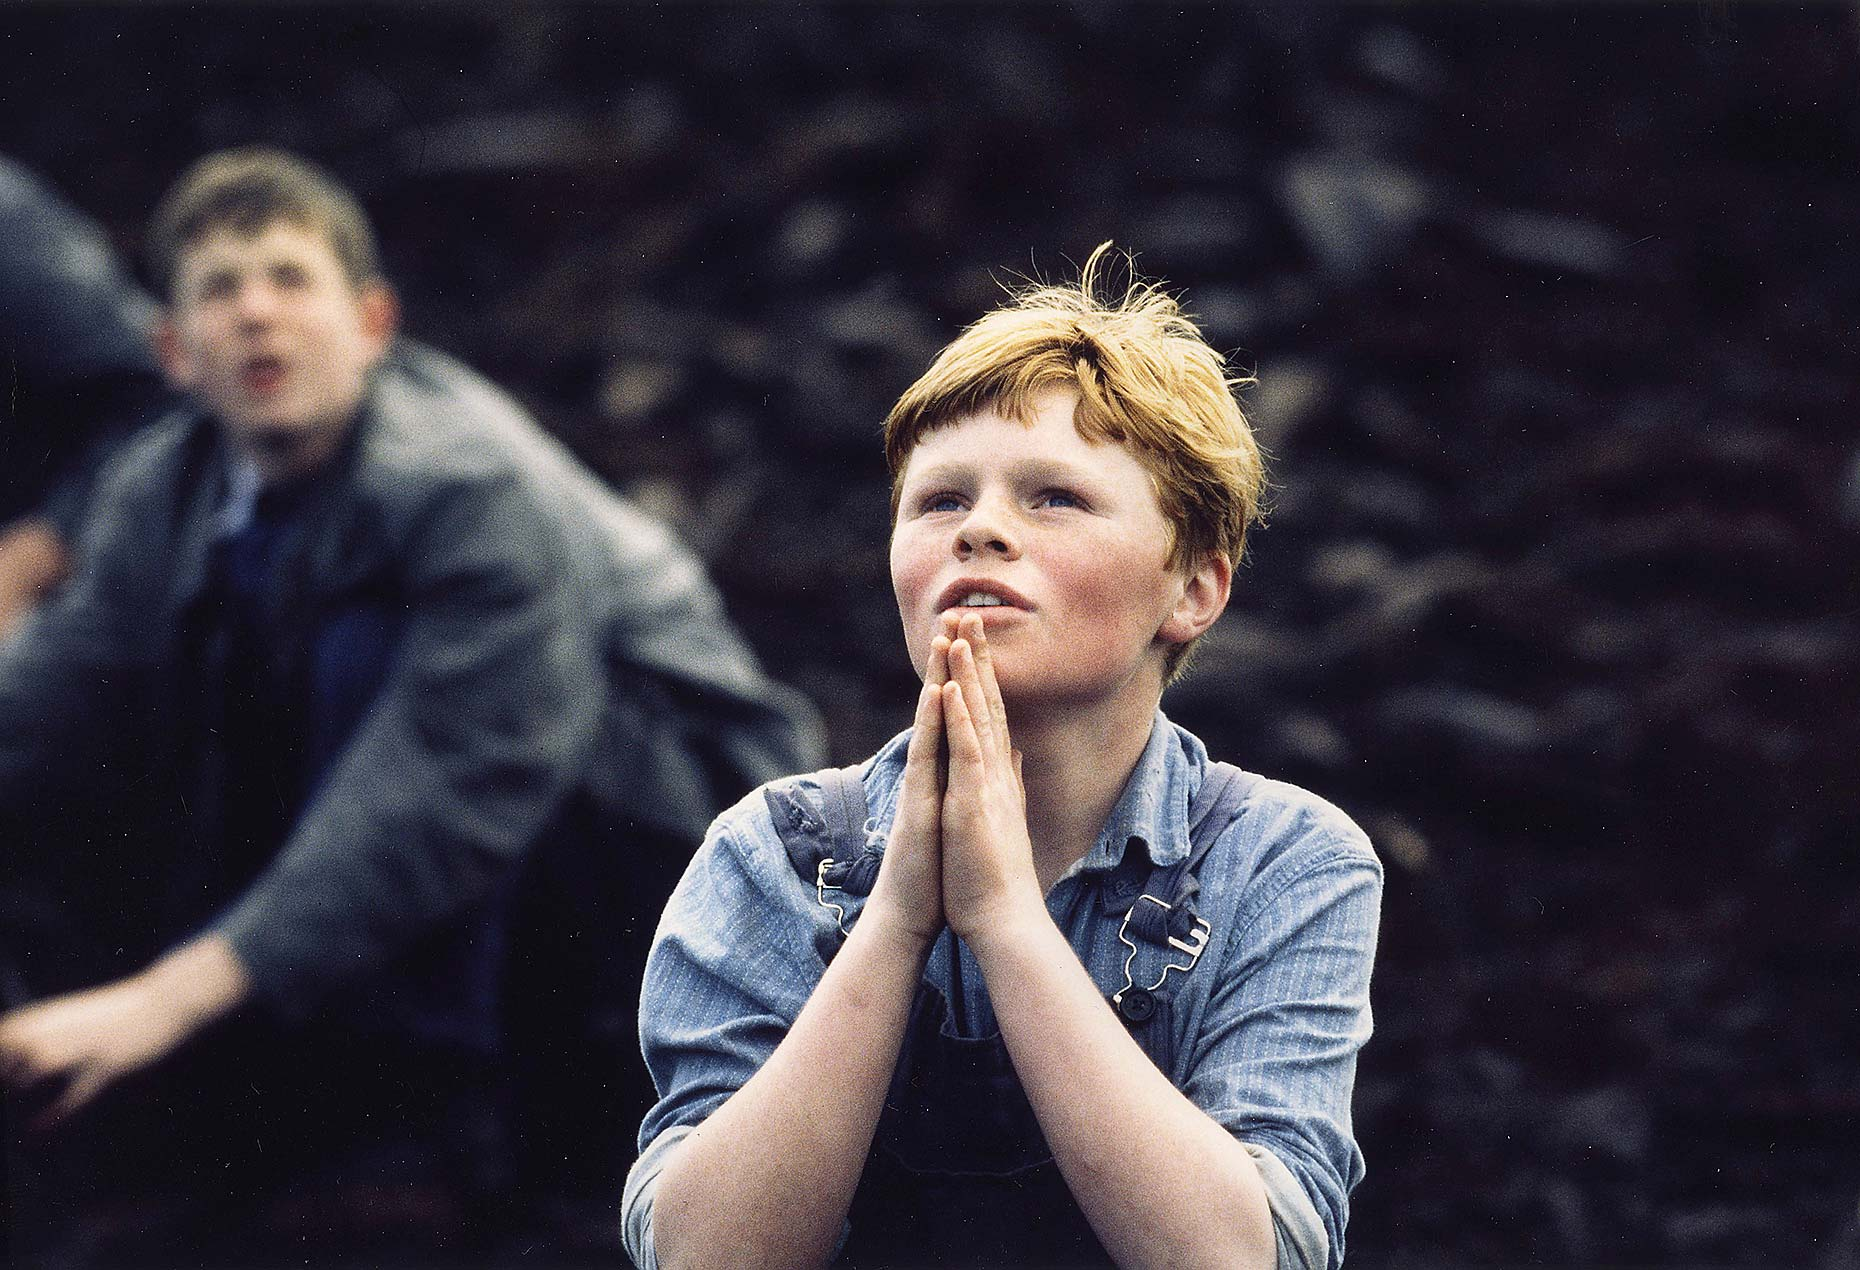 THE BUTCHER BOY : Eamonn Owens (7)